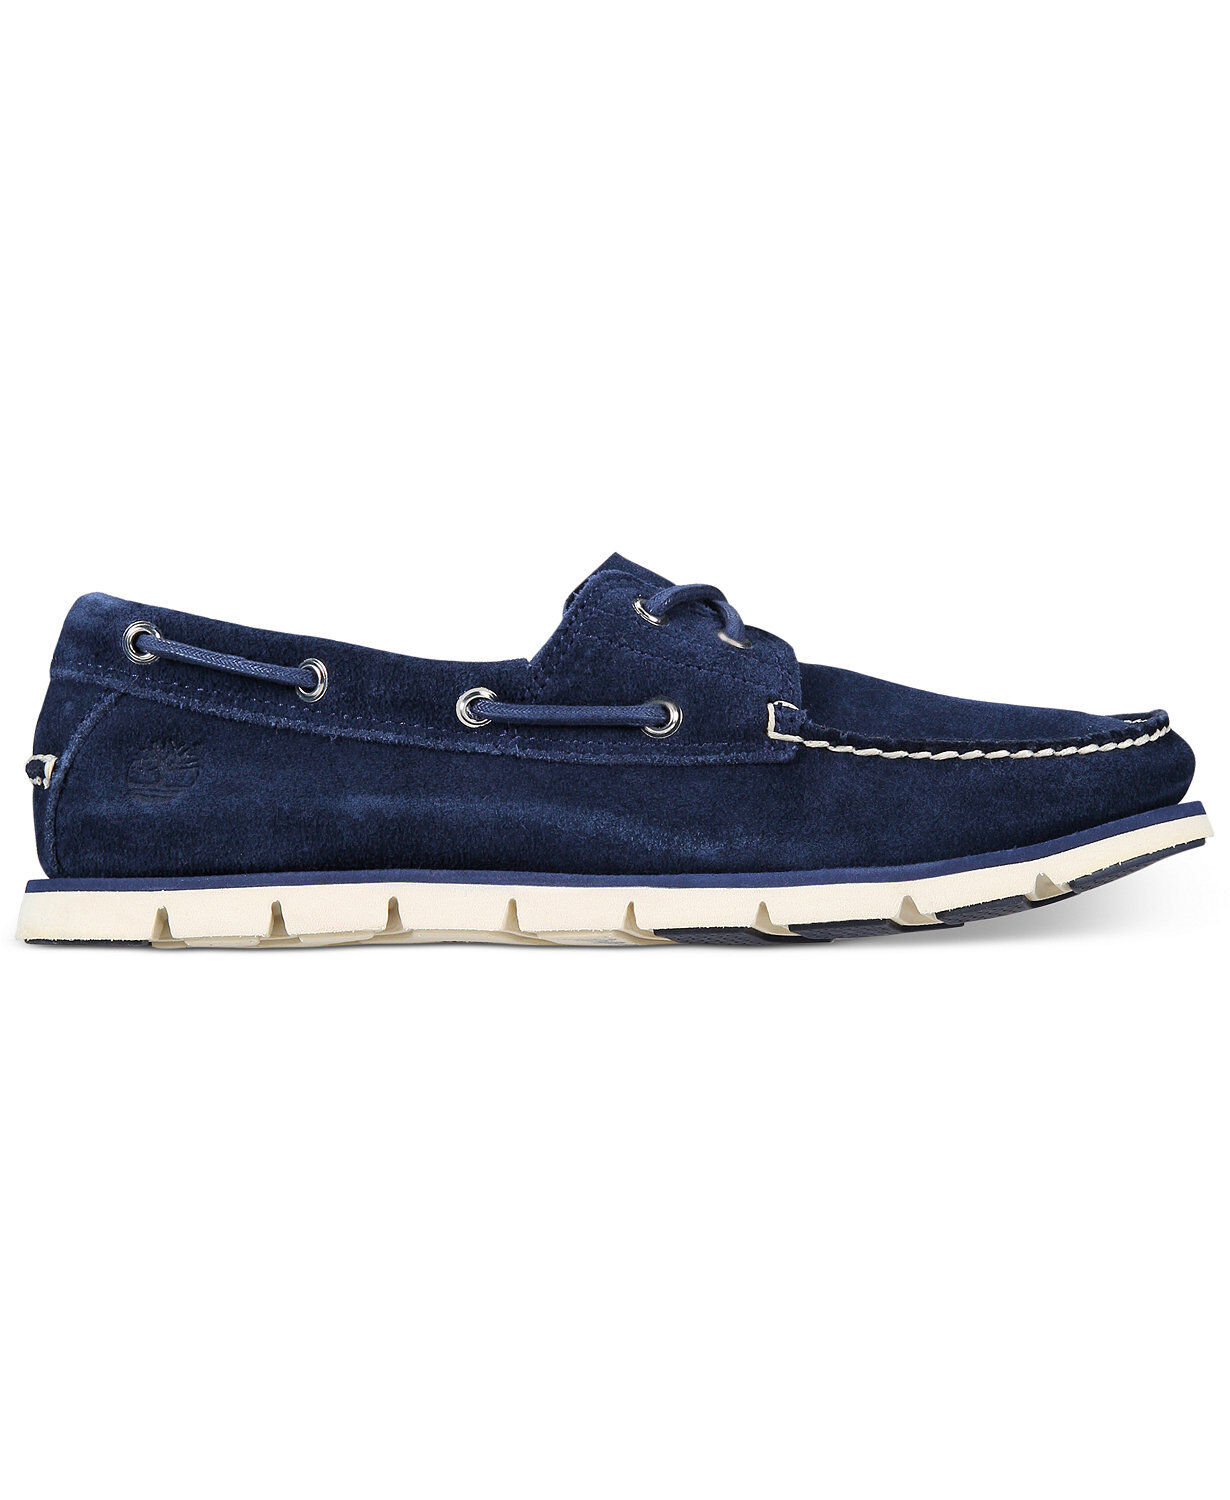 Timberland Men's Casual Shoes Loafers Hommes Full Grain Leather Blue TB0A1HB2 1